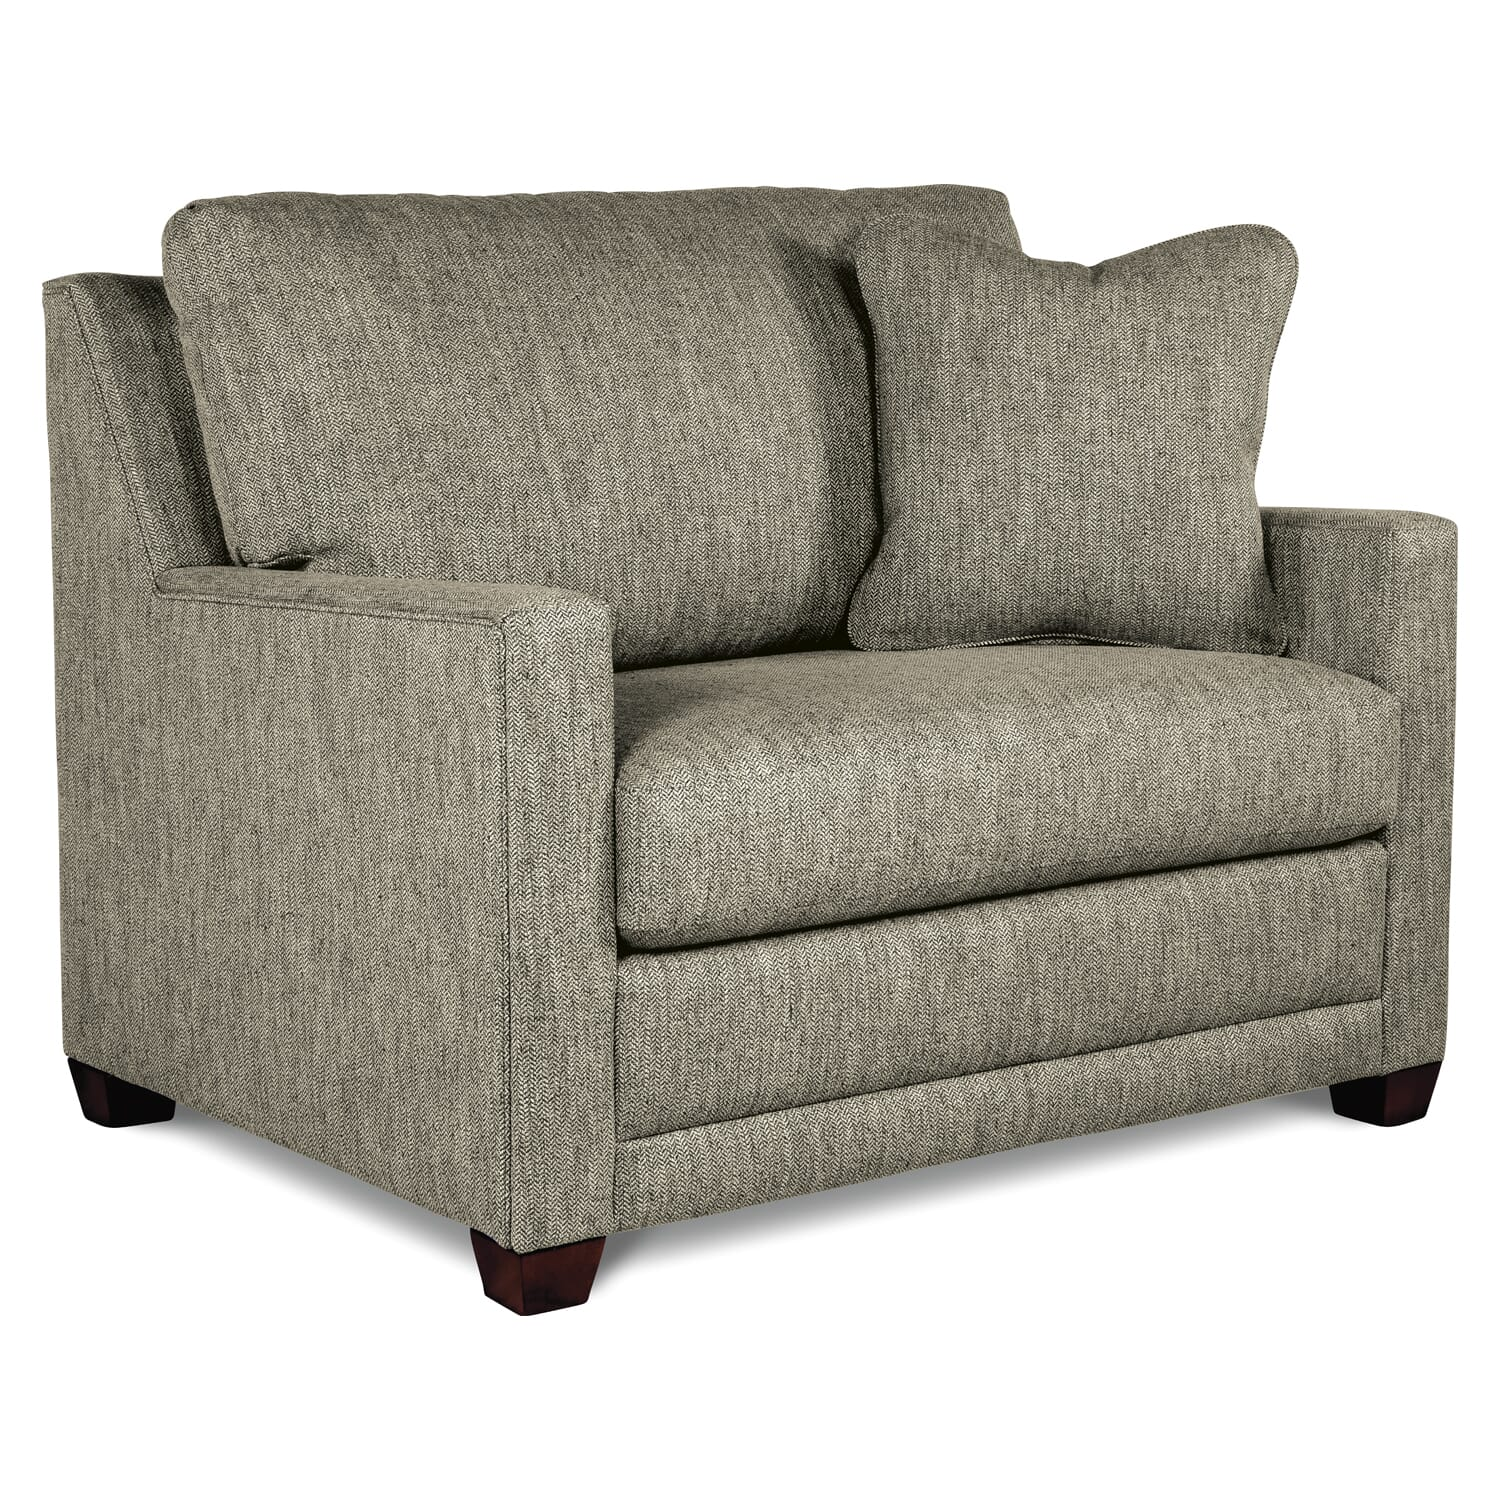 - Twilight Twin Sleeper Sofa In-Store Purchase Only, Sleeper Sofas